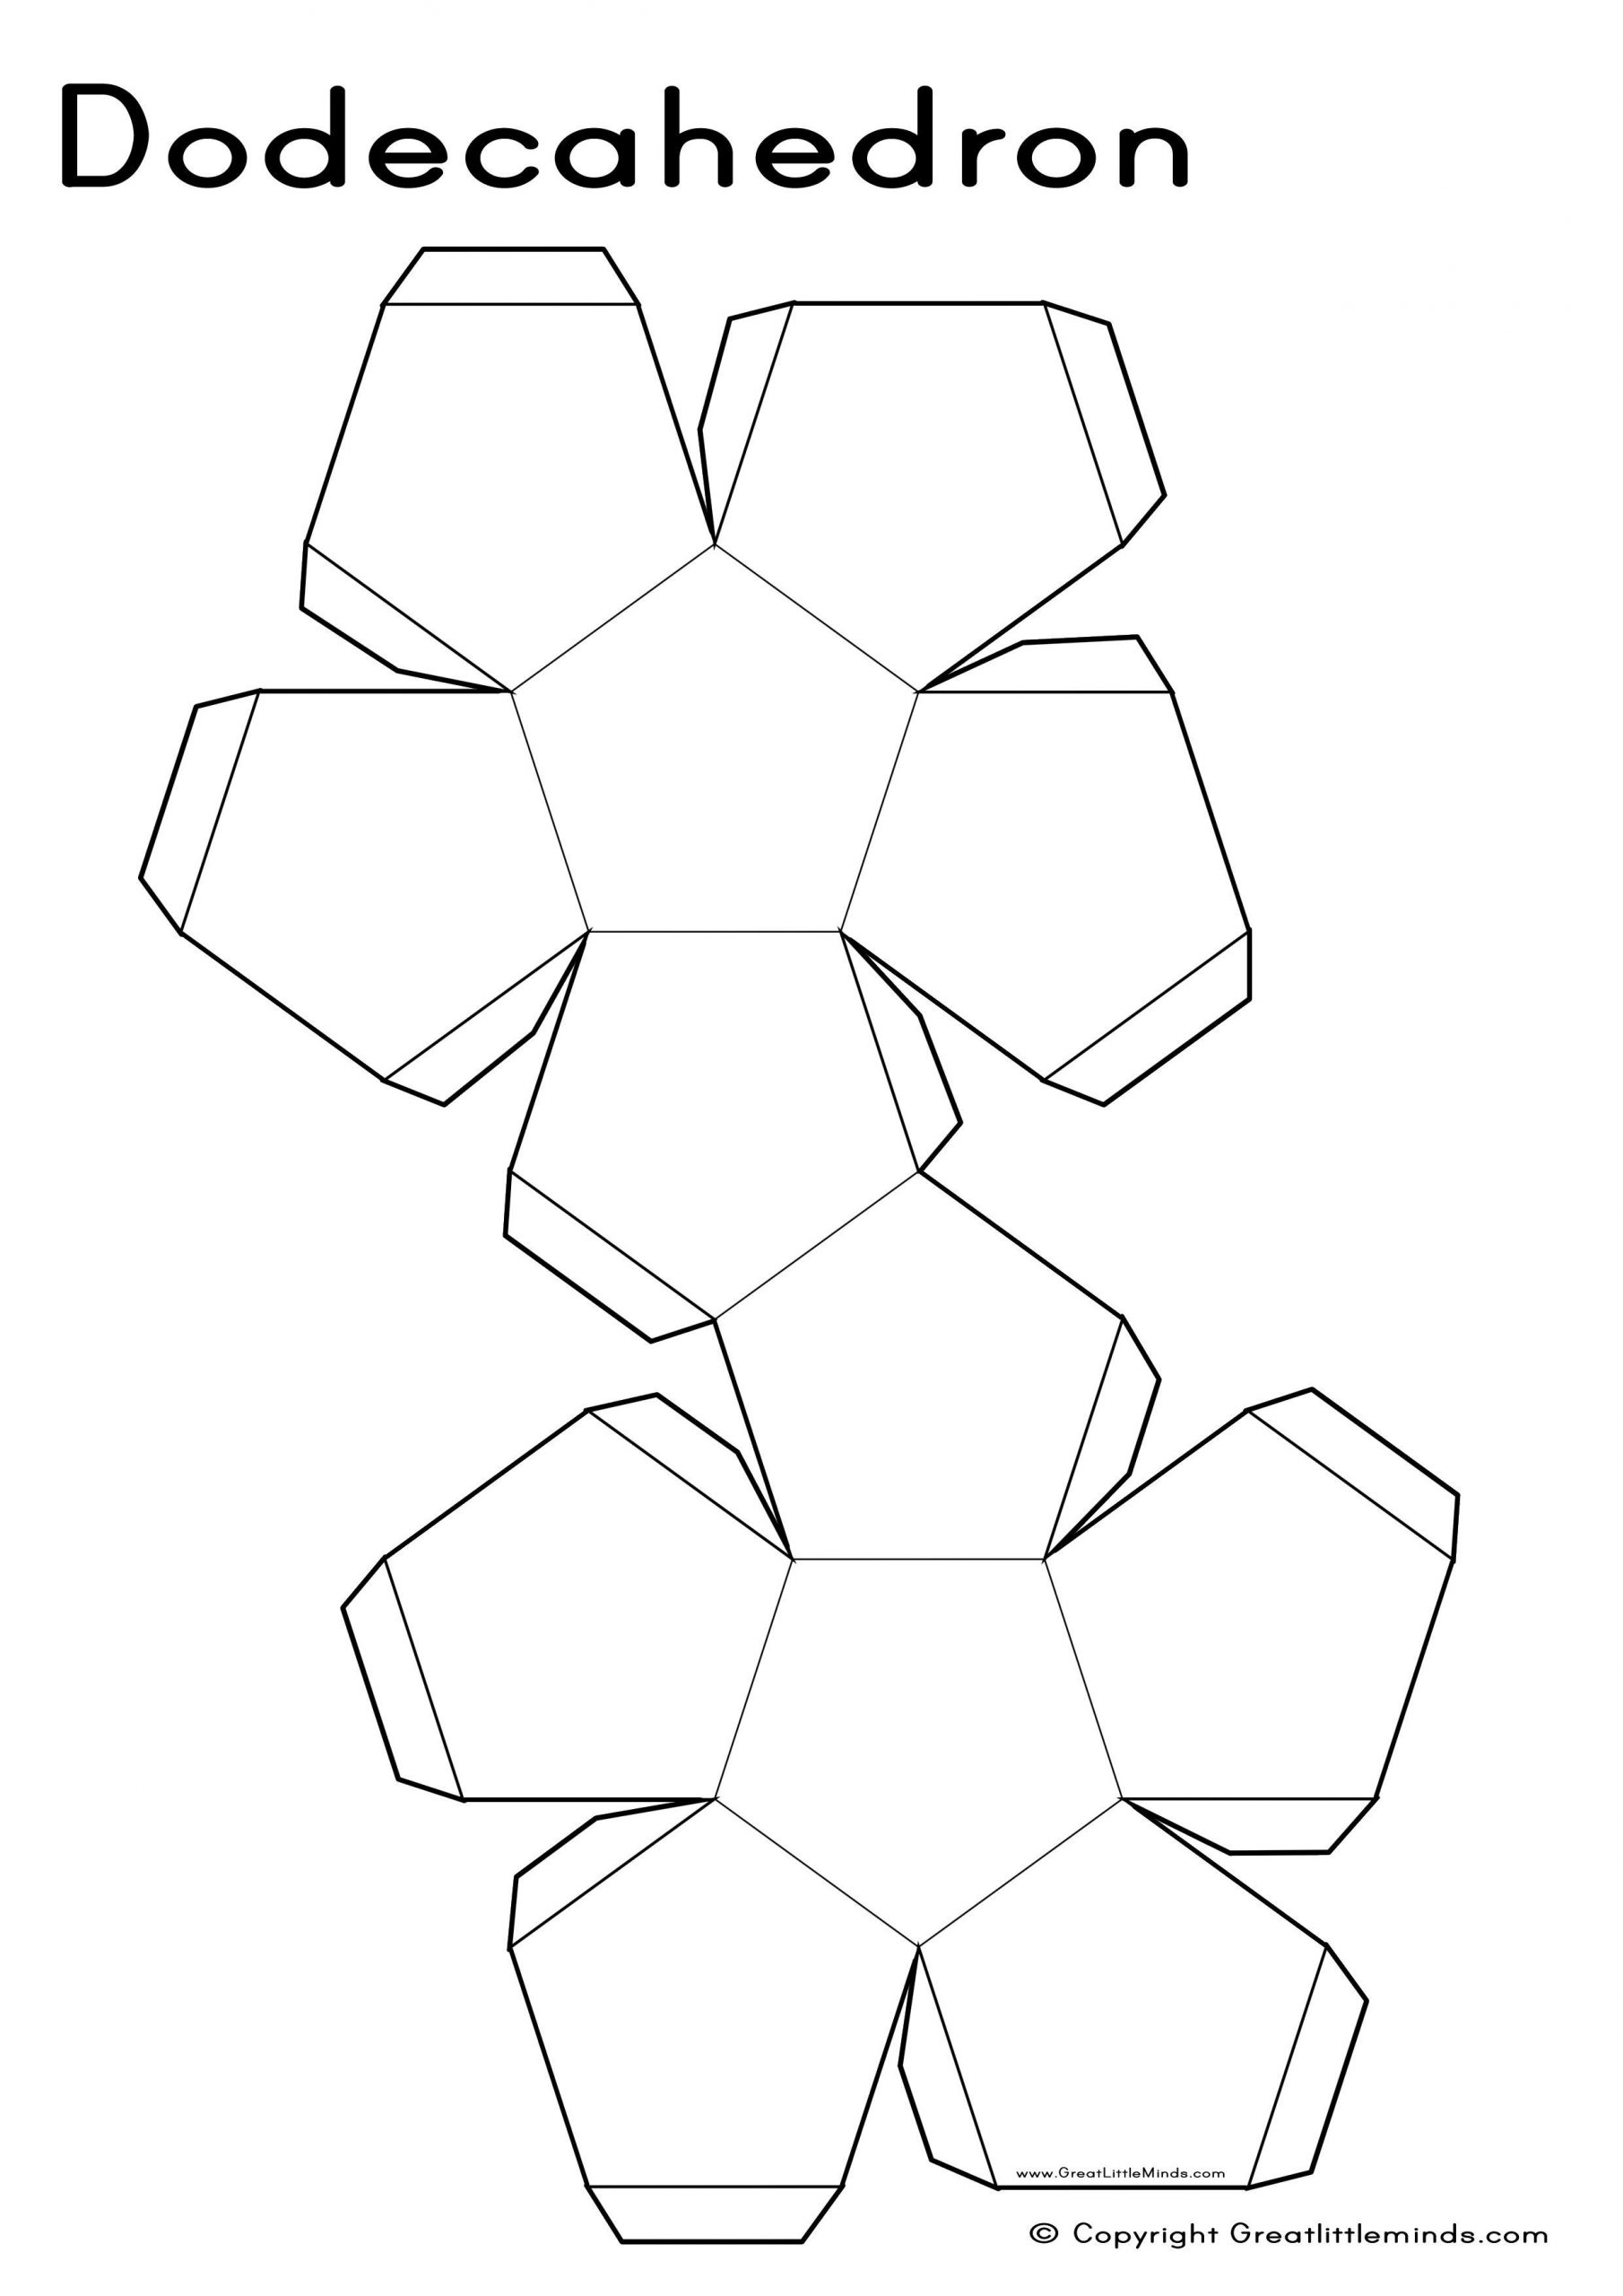 Geometry Template Printable 3d Nets Dodecahedron A4 2480—3508